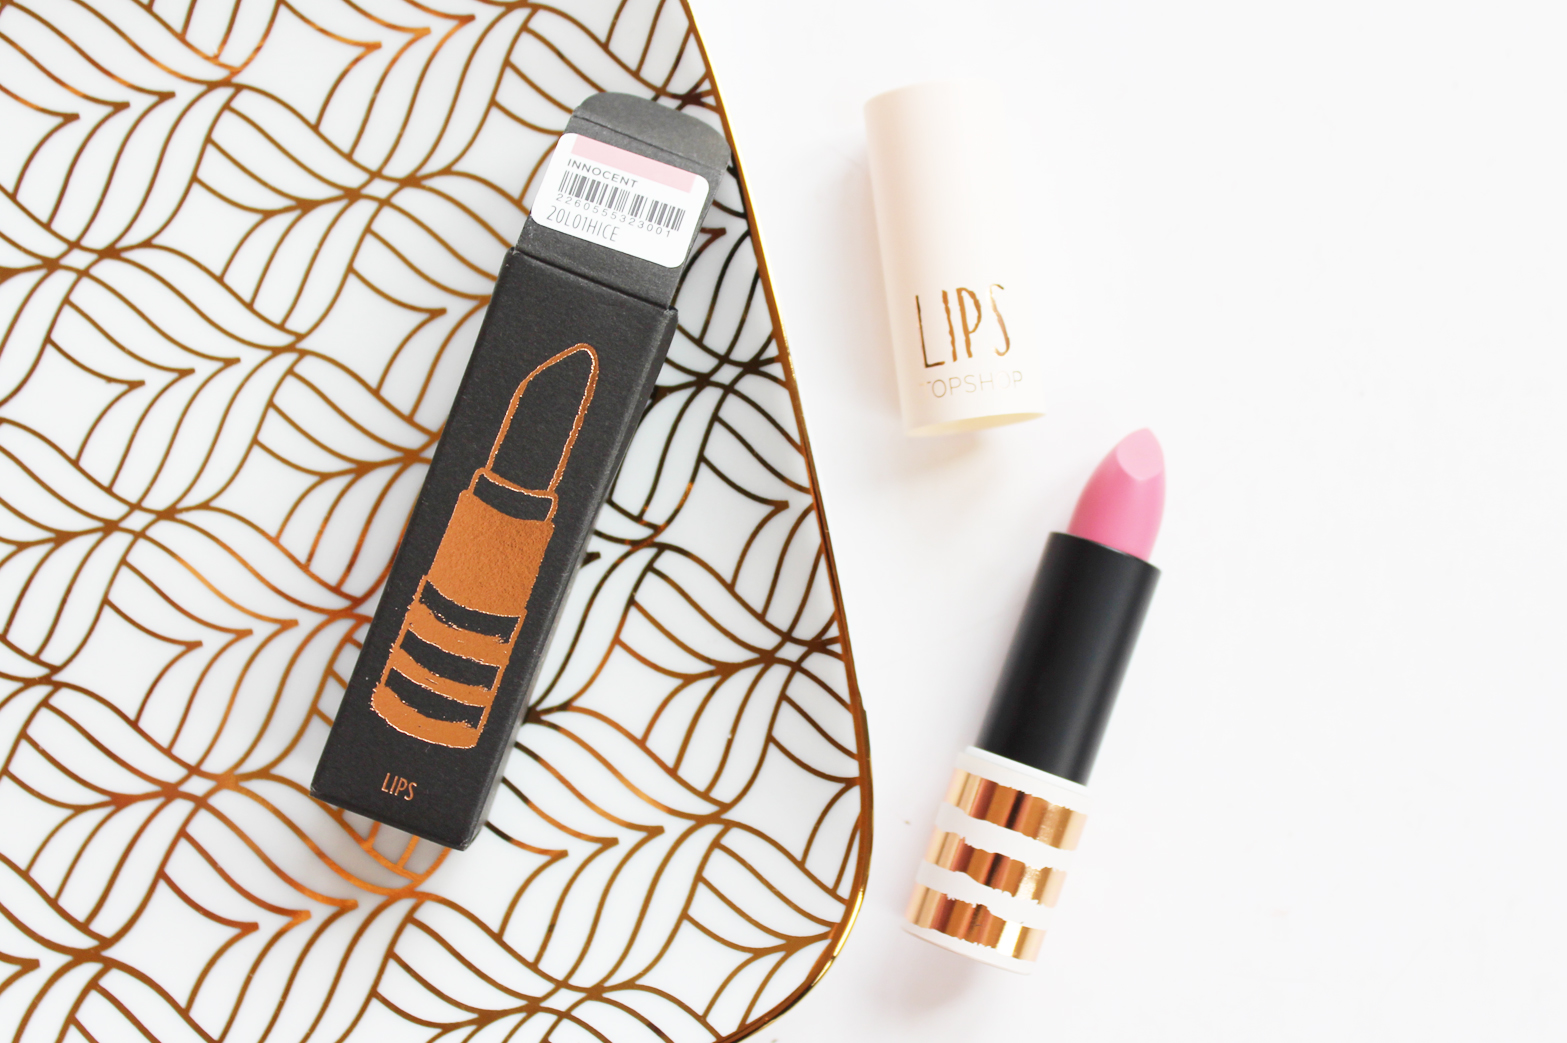 TOPSHOP | 5 Years of Beauty Haul - Glow Pot in Polished, Lipstick in Innocent + Nail Polish in Adrenalin - CassandraMyee